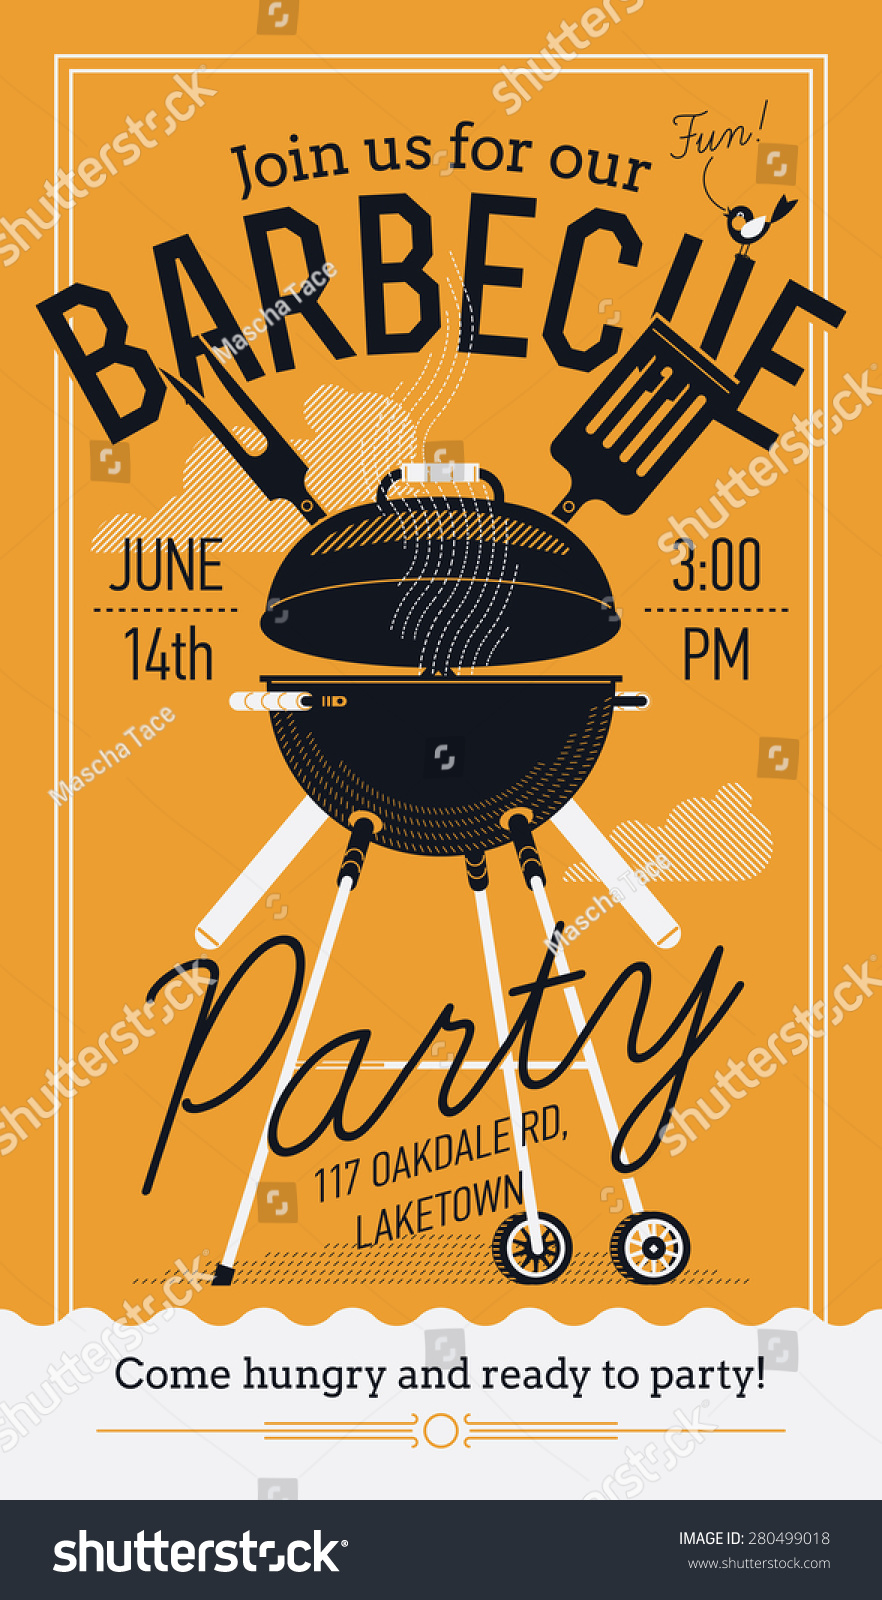 Royalty-free Lovely vector barbecue party invitation… #280499018 ...